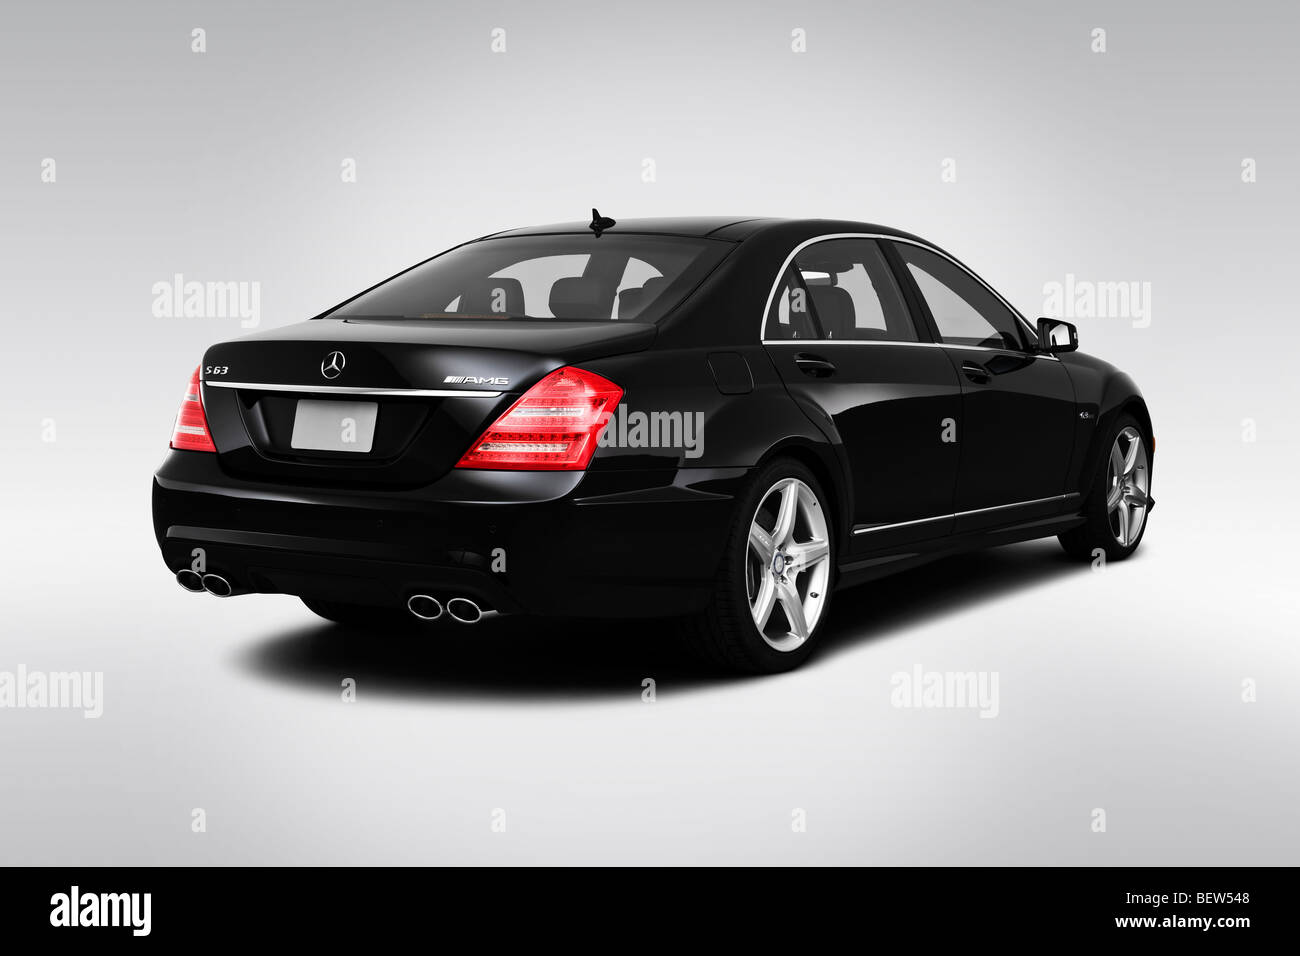 2010 Mercedes Benz S Class S63 Amg In Black Rear Angle